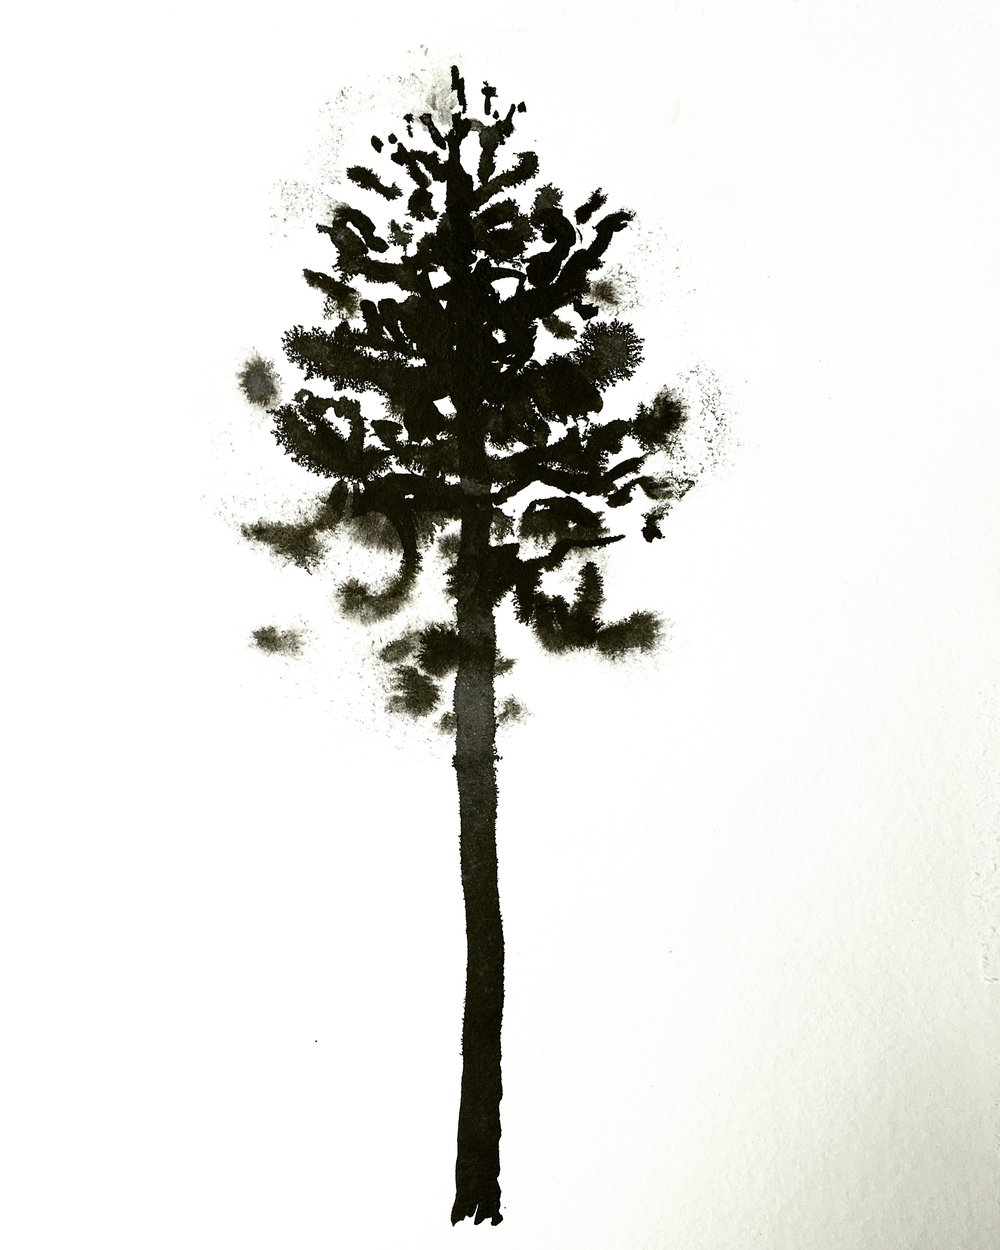 Tree study I did in the wilderness.